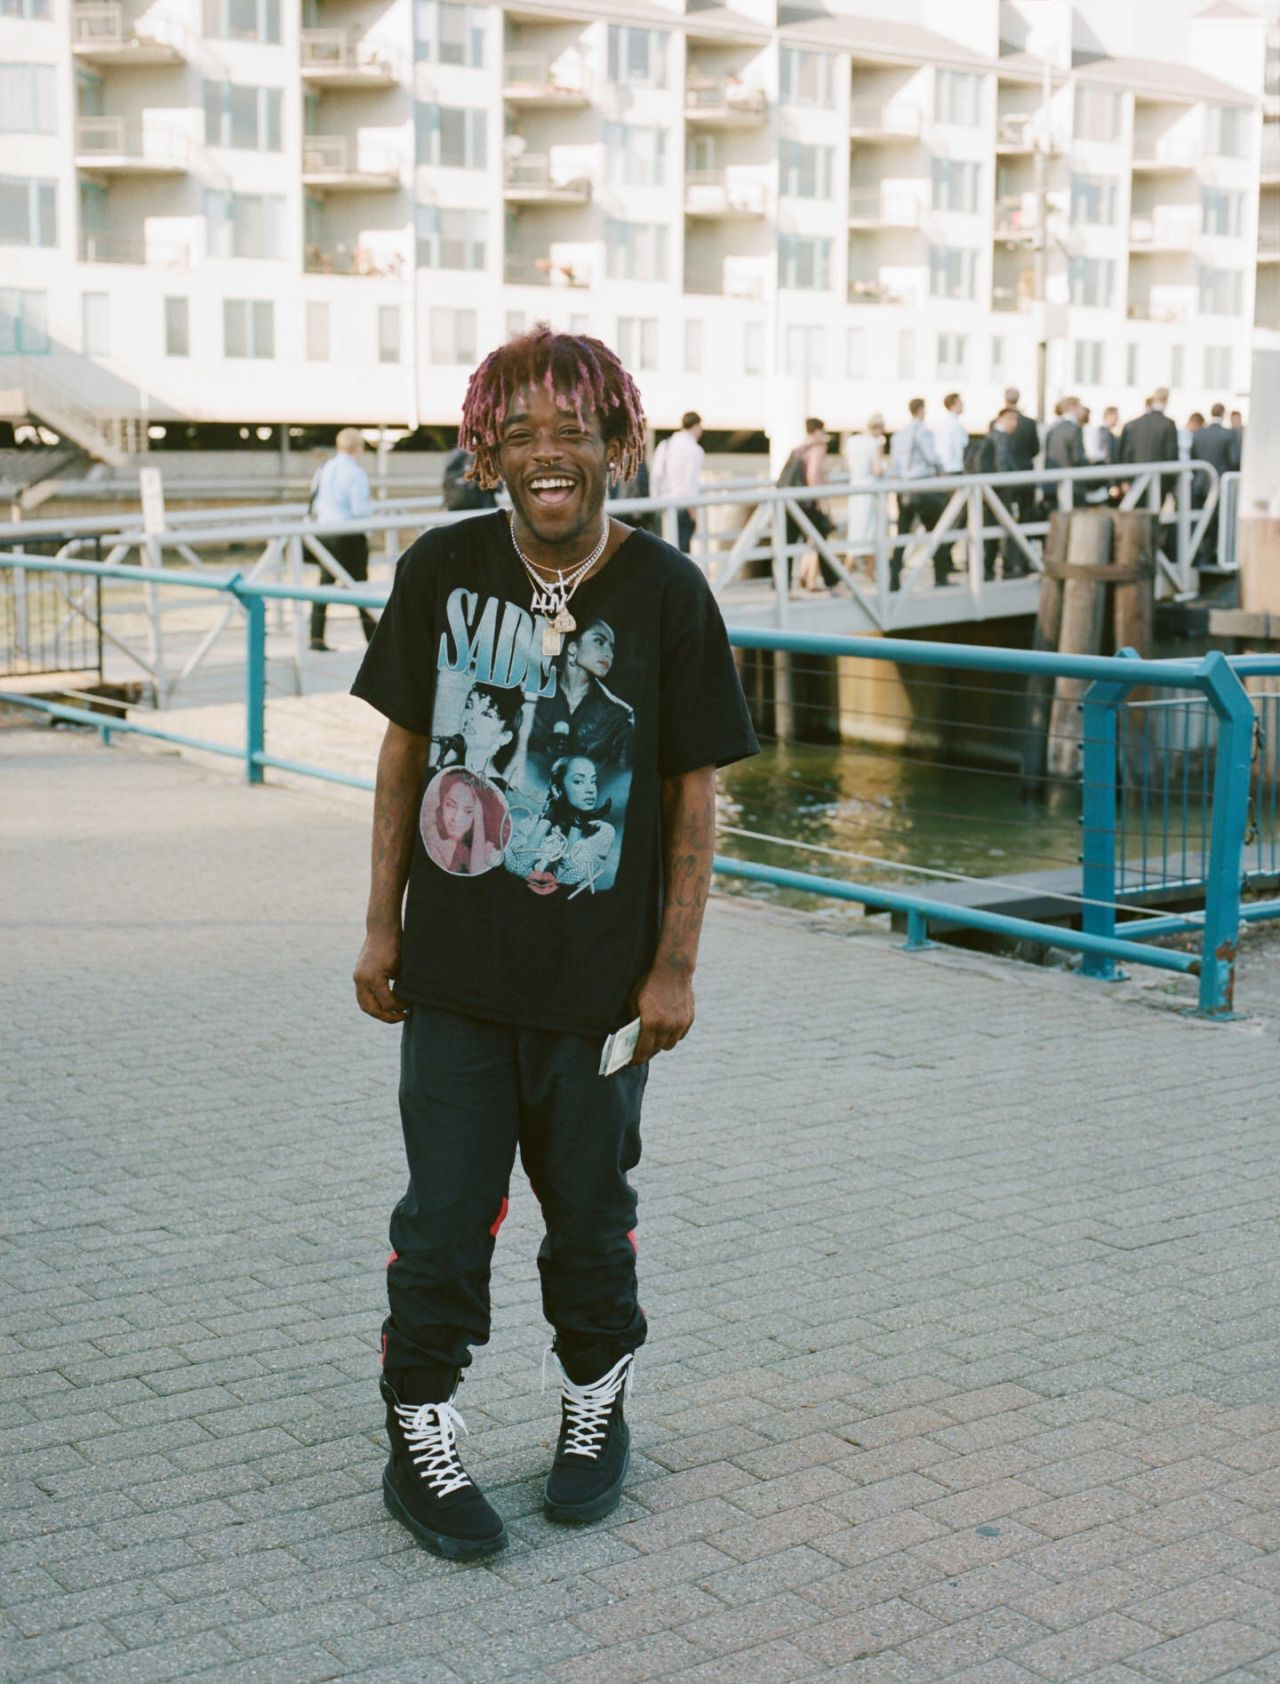 Pin On Style Dreams The enormous appetites of lil uzi vert | gq. pin on style dreams